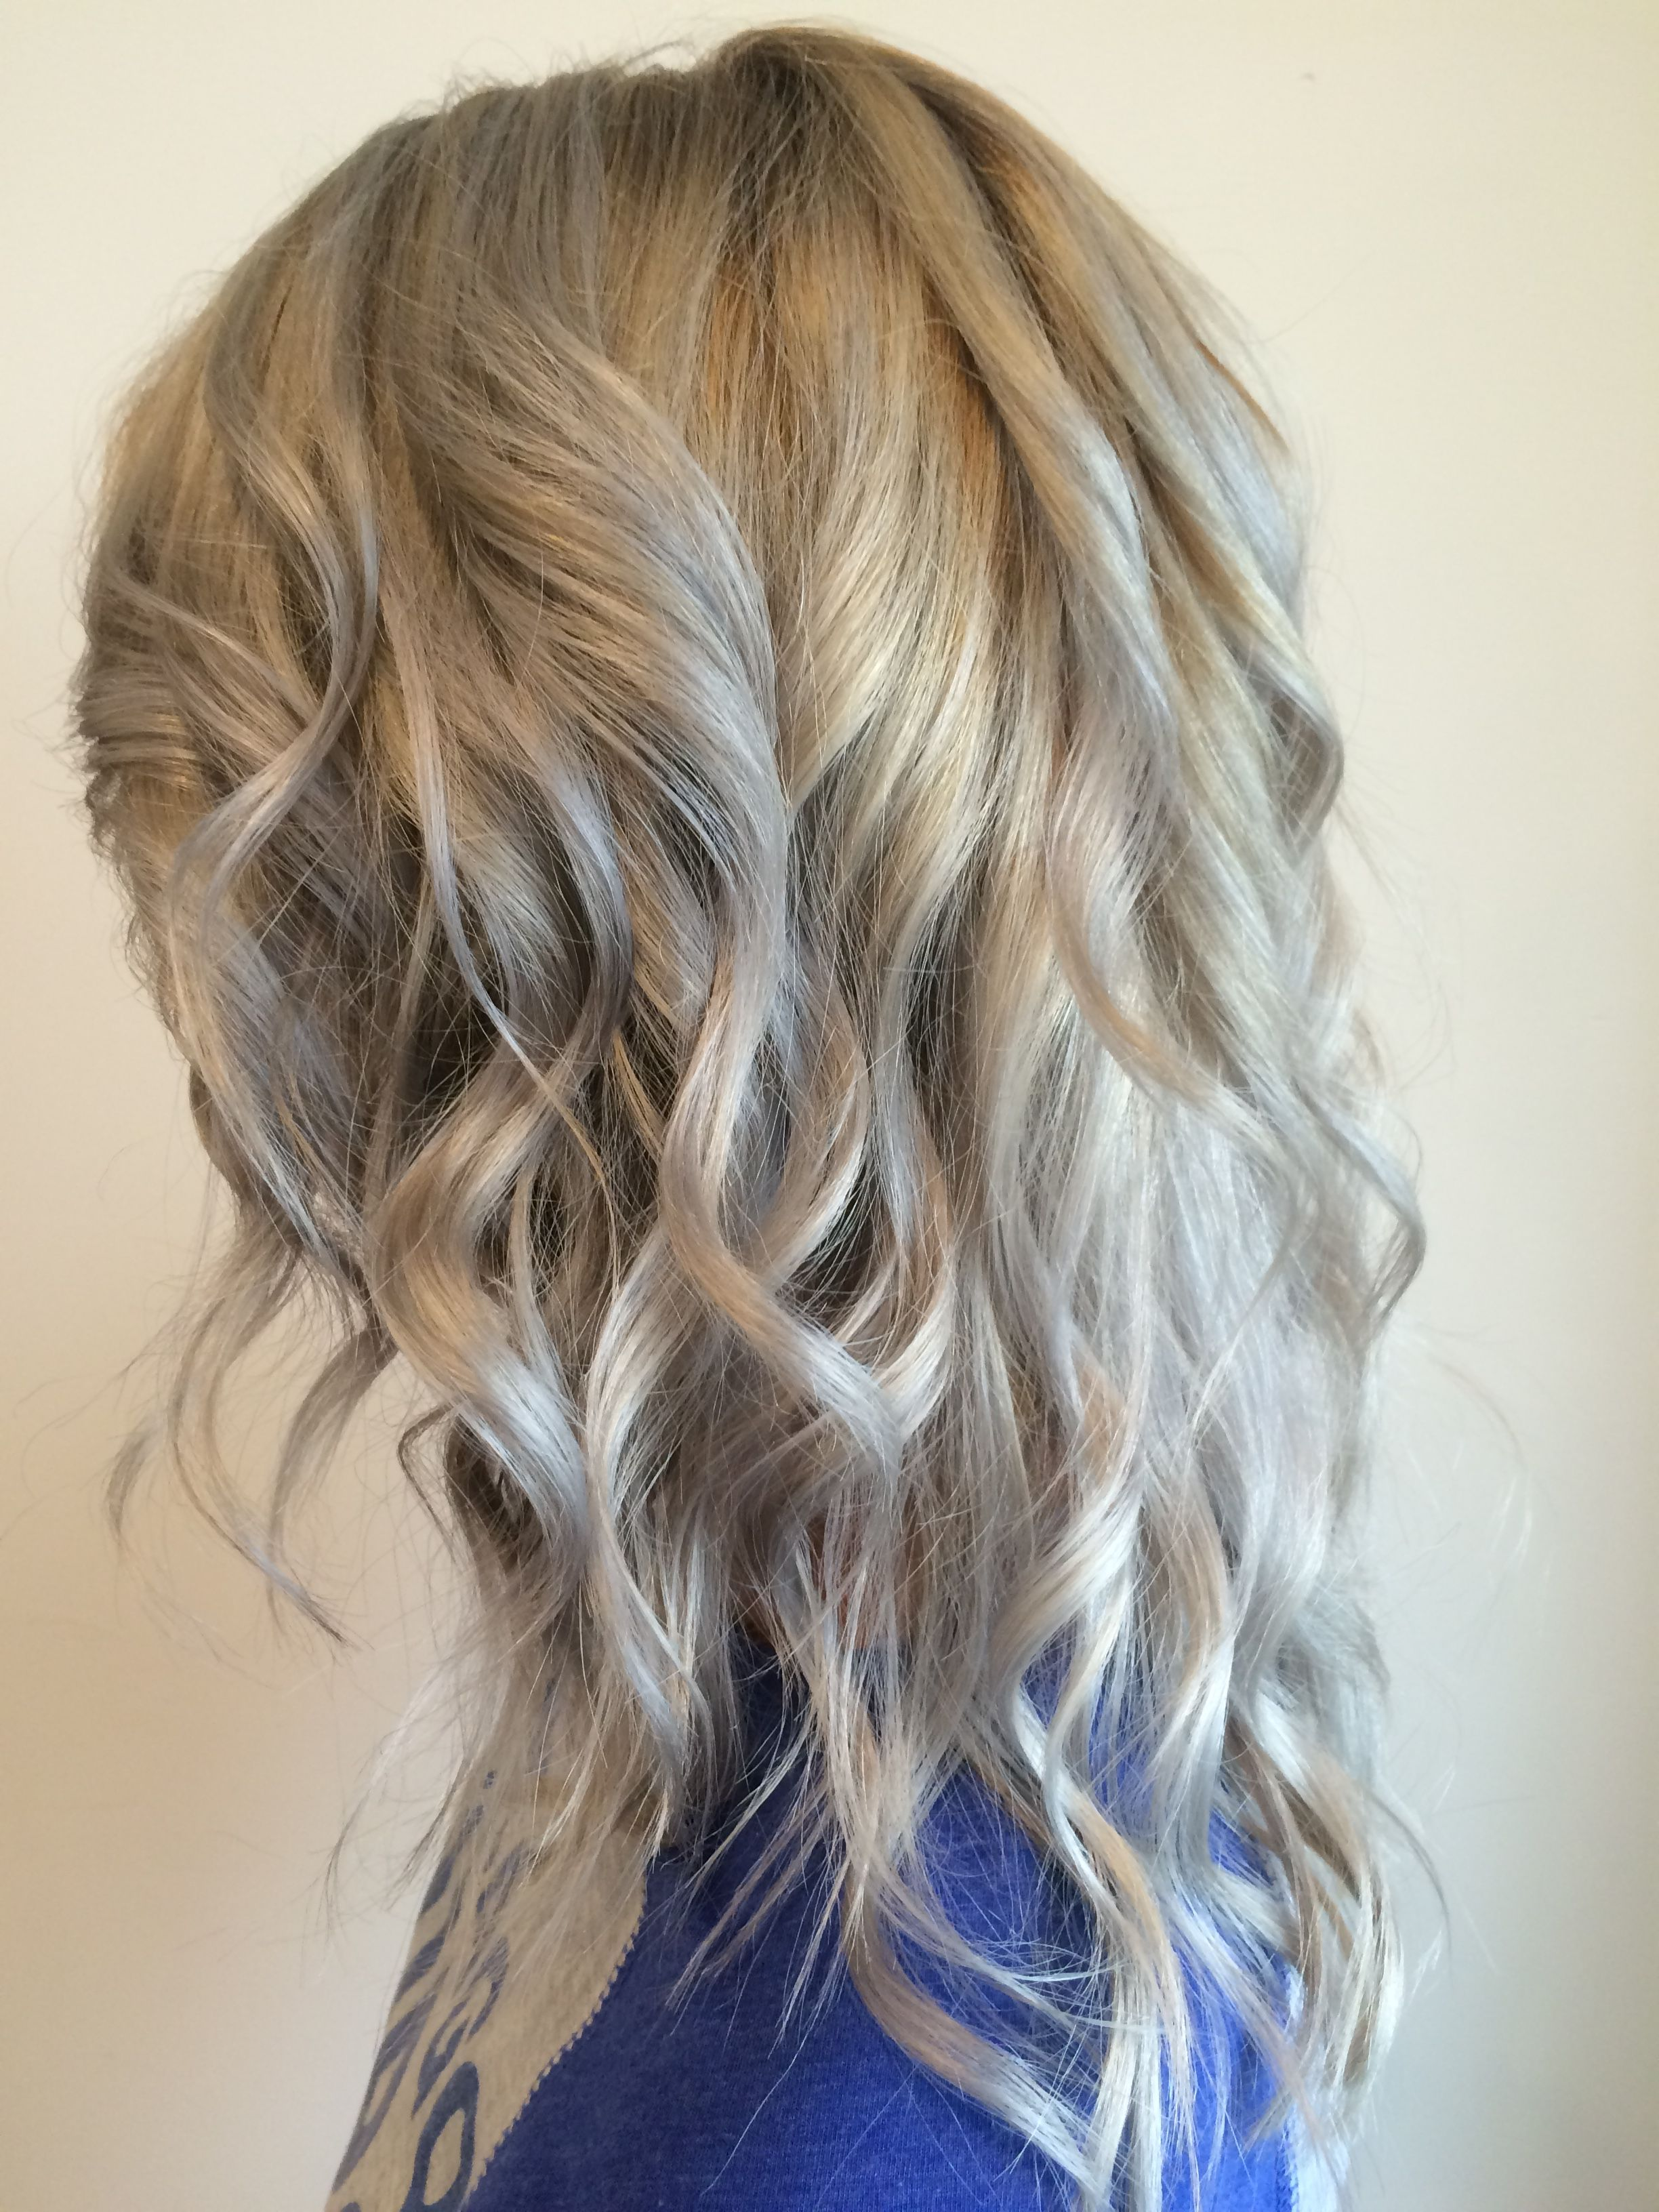 Hair Color Silver Toner With Low Light Natural Take On Blue Silver Hair Hair Color Long Hair Styles Silver Hair